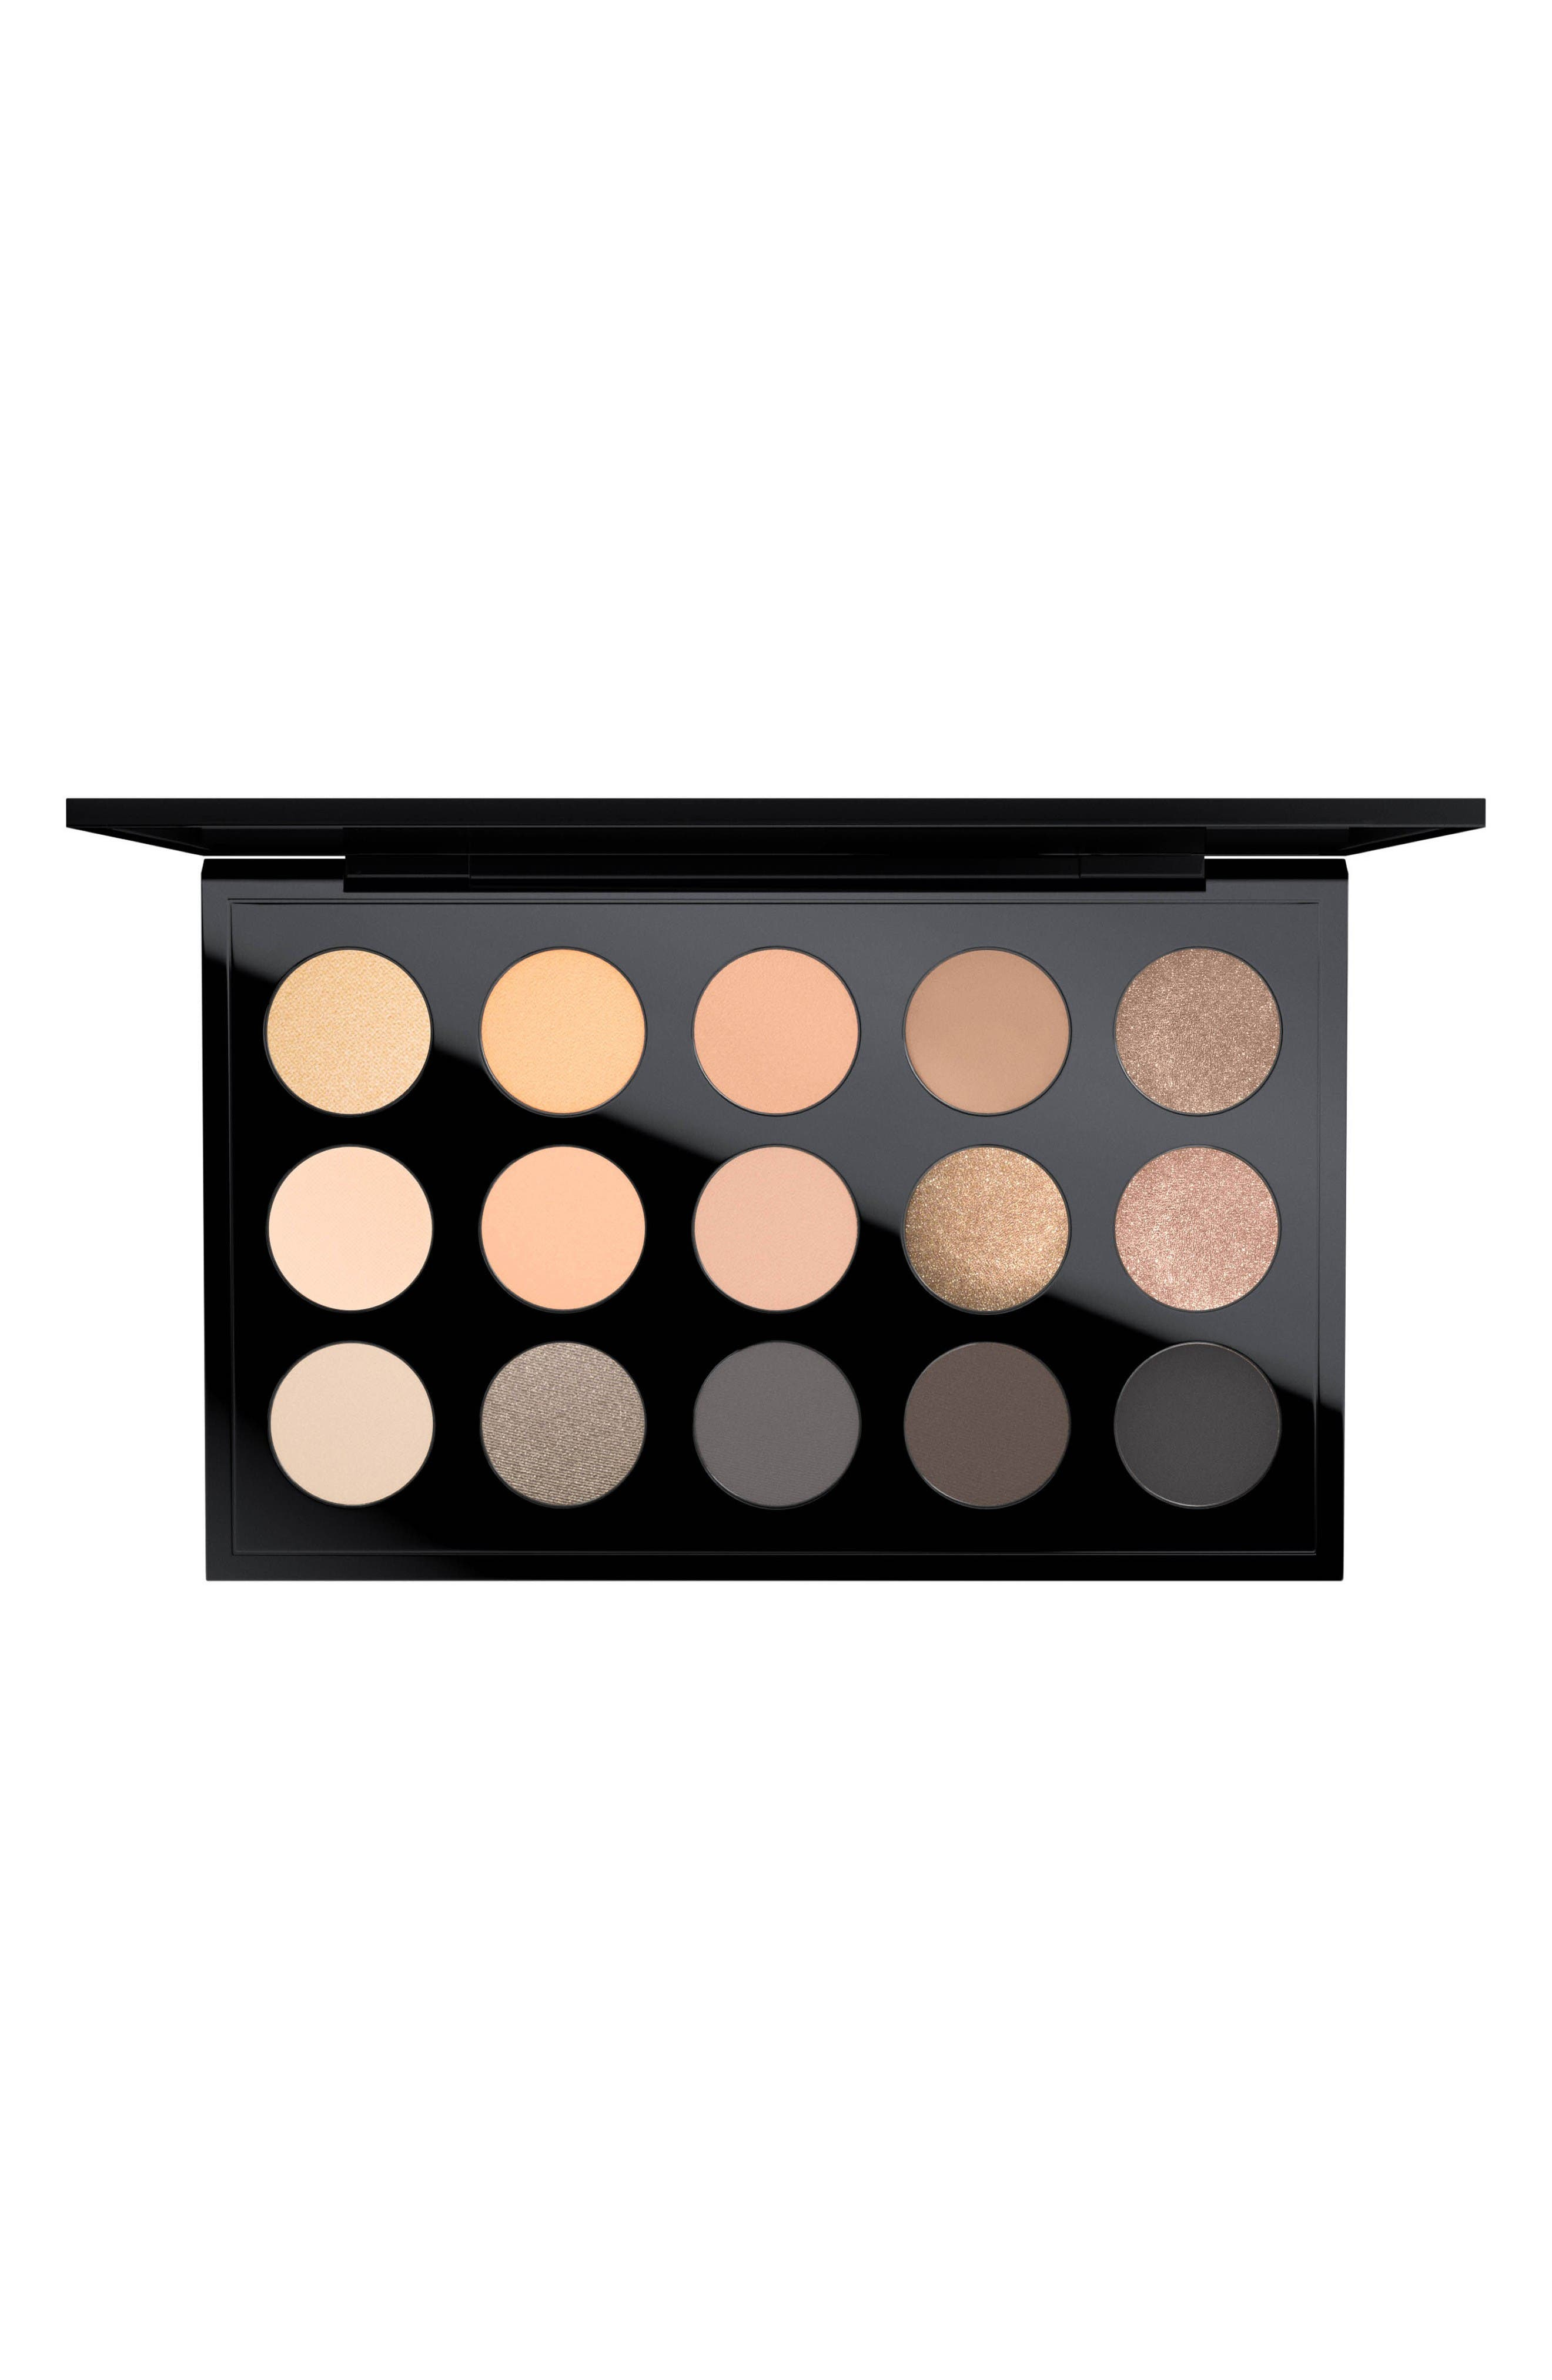 Main Image - MAC In the Flesh Times 15 Eyeshadow Palette ($101 Value)